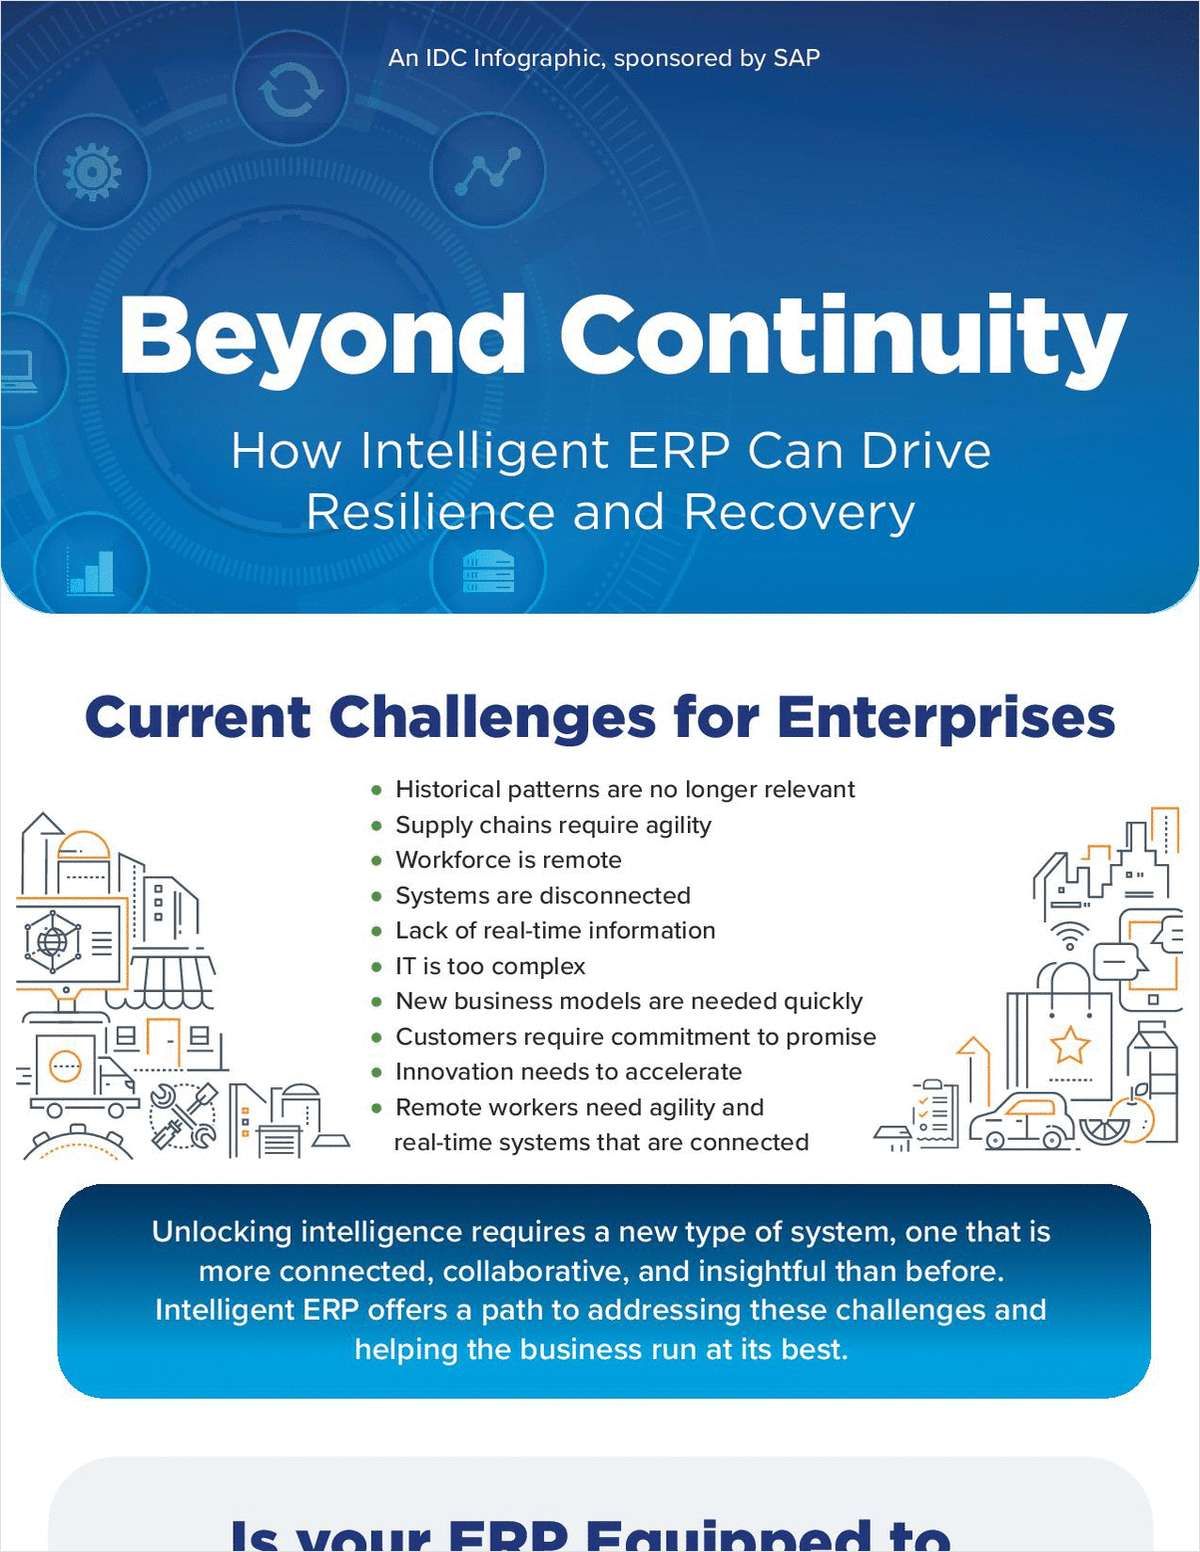 Beyond Continuity - How Intelligent ERP Can Drive Resilience and Recovery